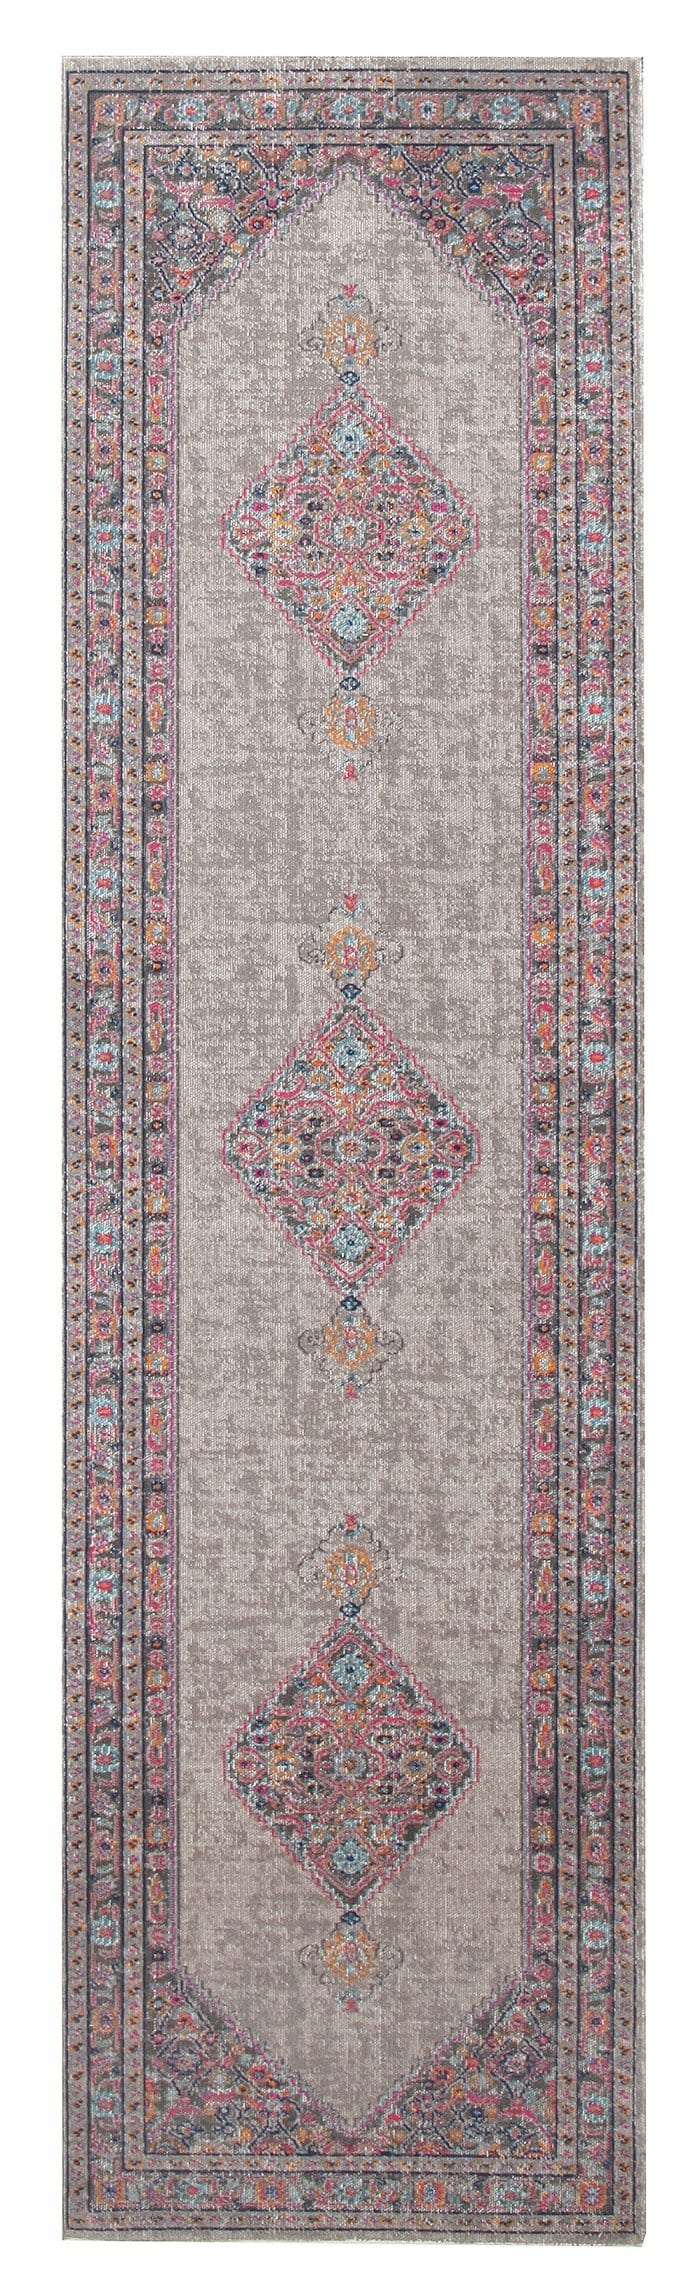 Hamam Persian Style Floral Runner Rug